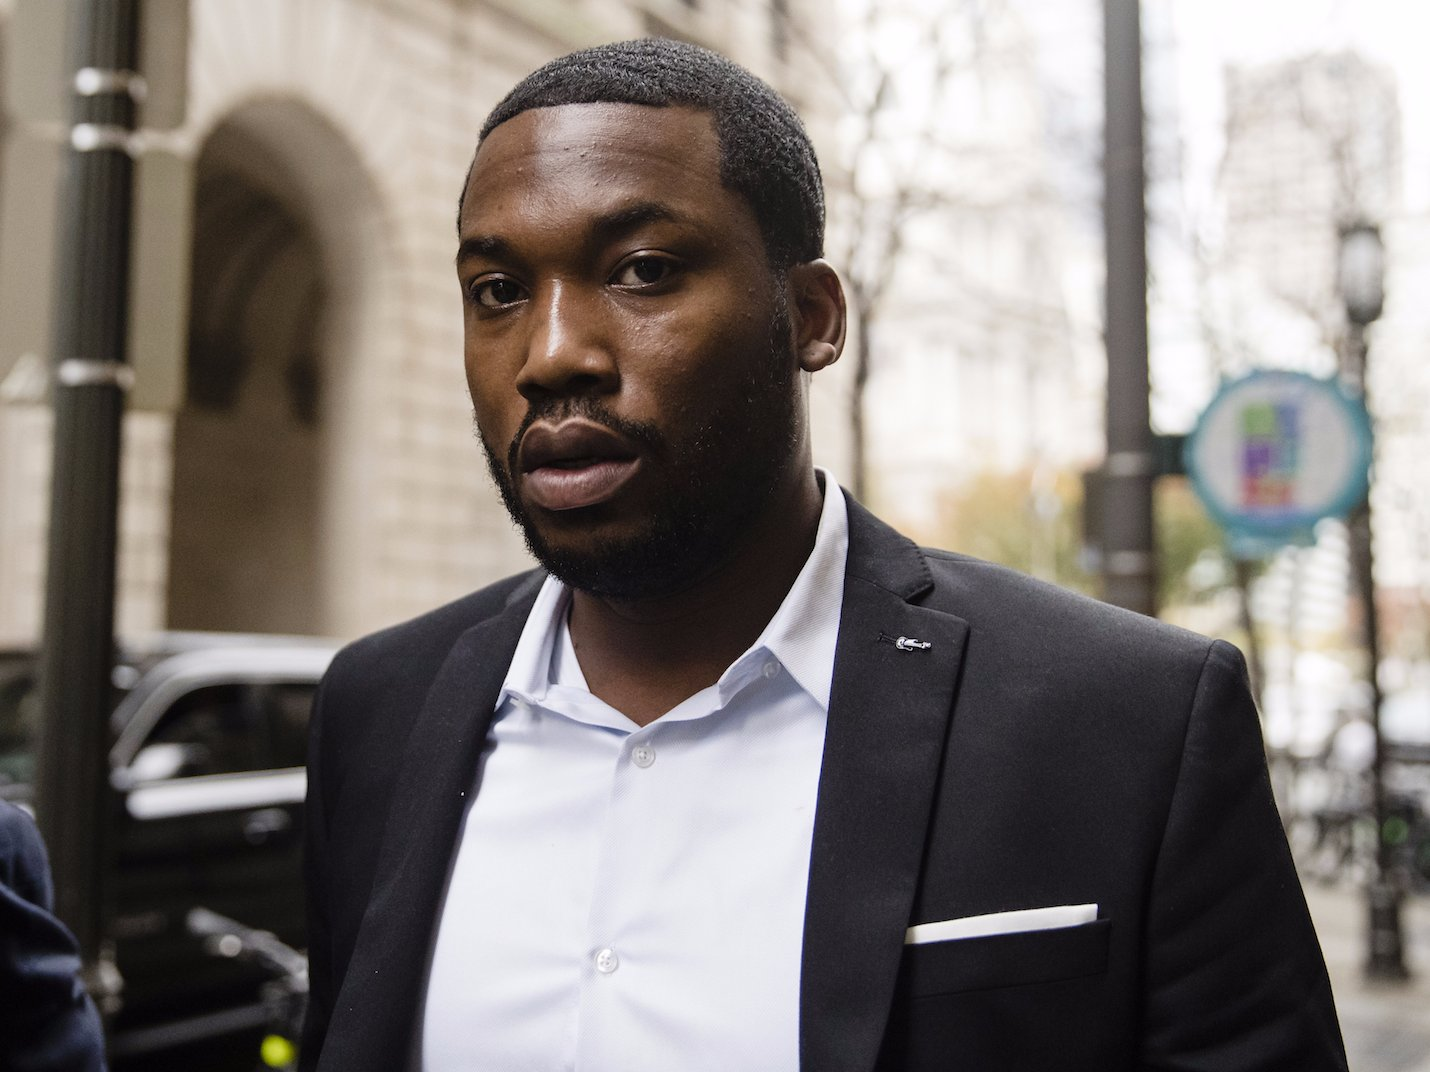 More than 100000 people petition Pennsylvania to free Meek Mill class=